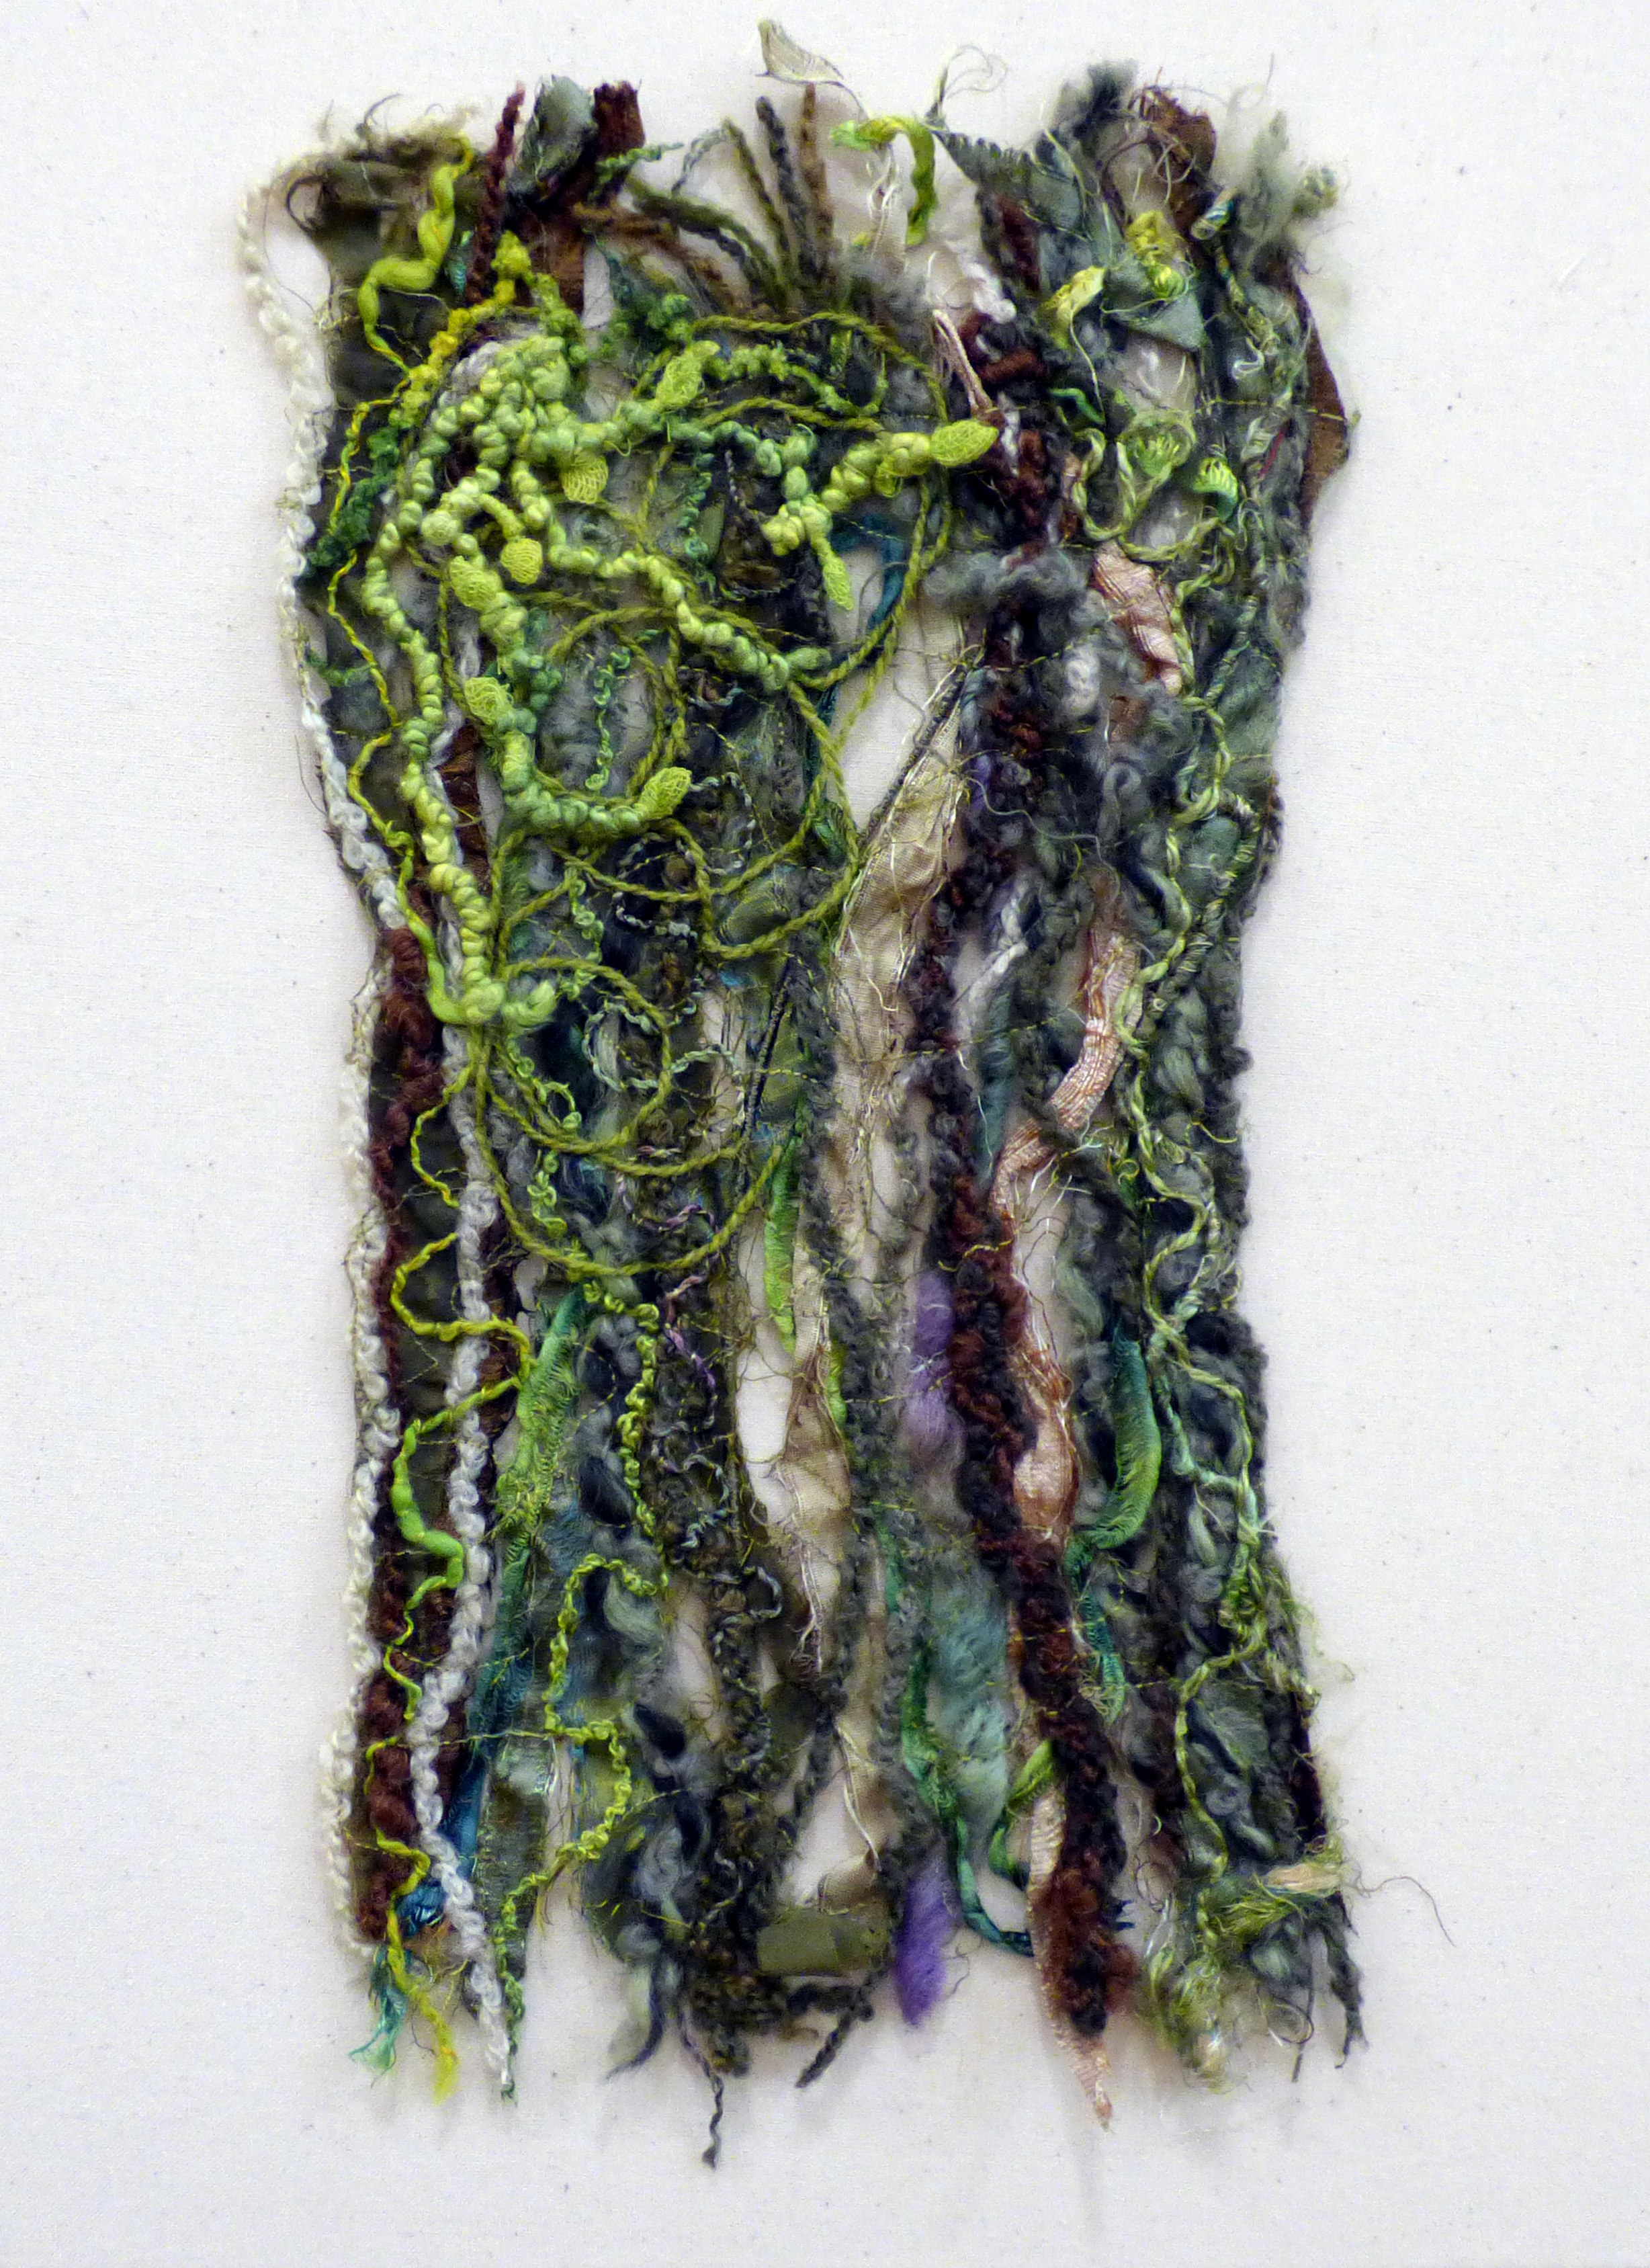 TREES AND LEAVES: SPRING by Carol Condliffe, Macclesfield & District EG, machine stitching and couching